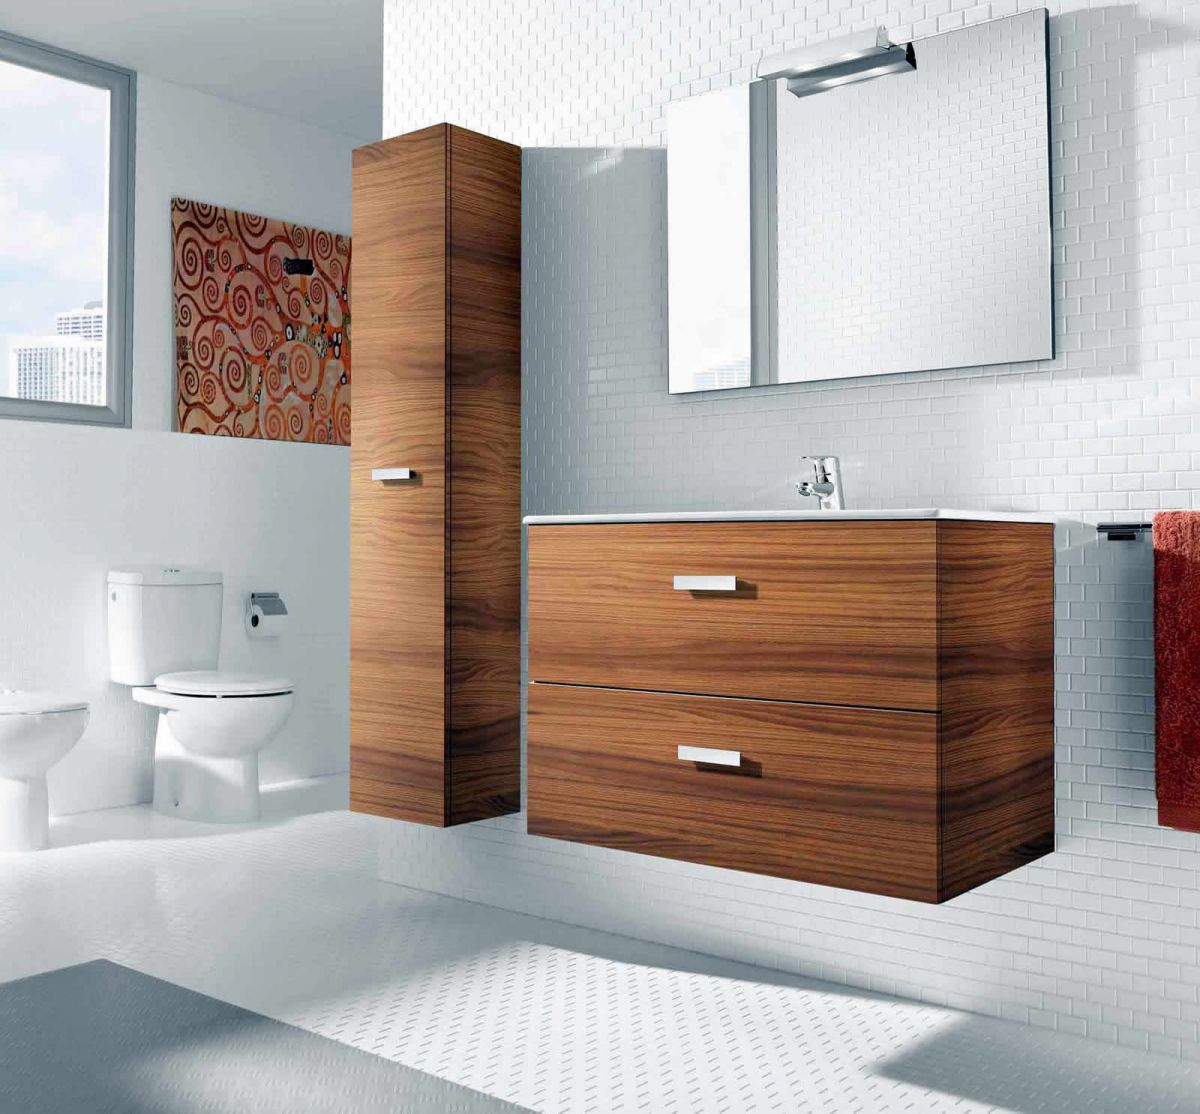 Stunning Bathroom Vanity Units Victoria Globorank roca bathroom vanity units